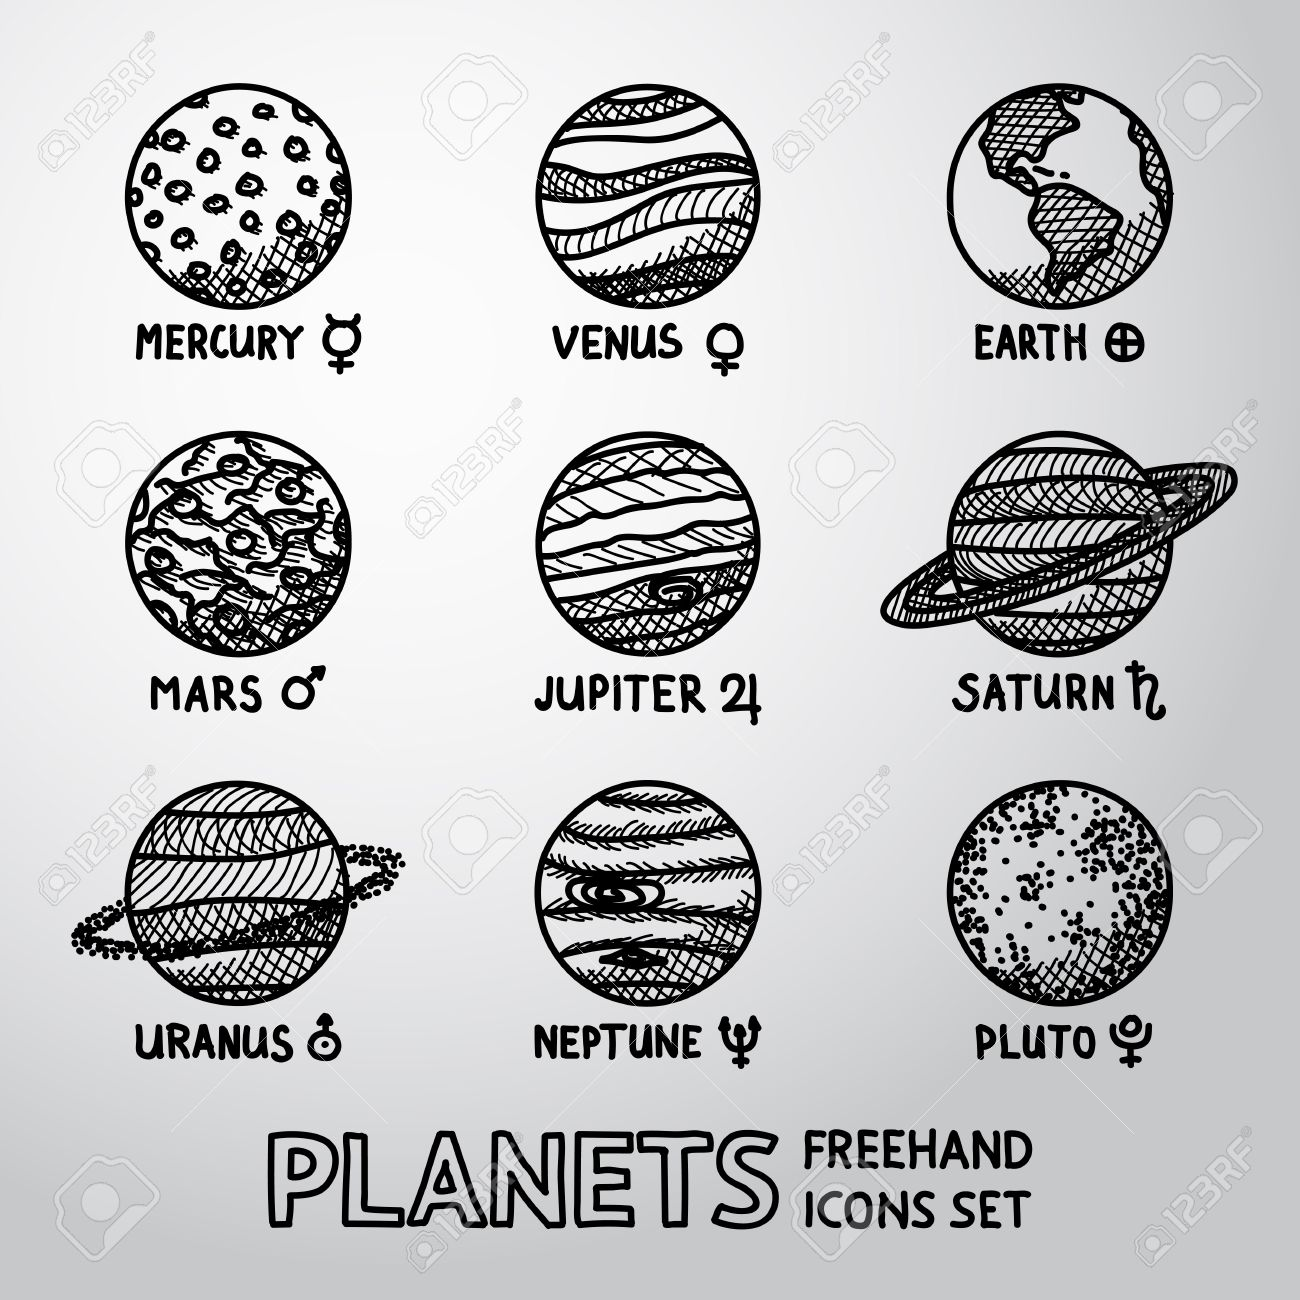 Set of hand drawn planet icons with names and astronomical symbols set of hand drawn planet icons with names and astronomical symbols mercury venus biocorpaavc Choice Image